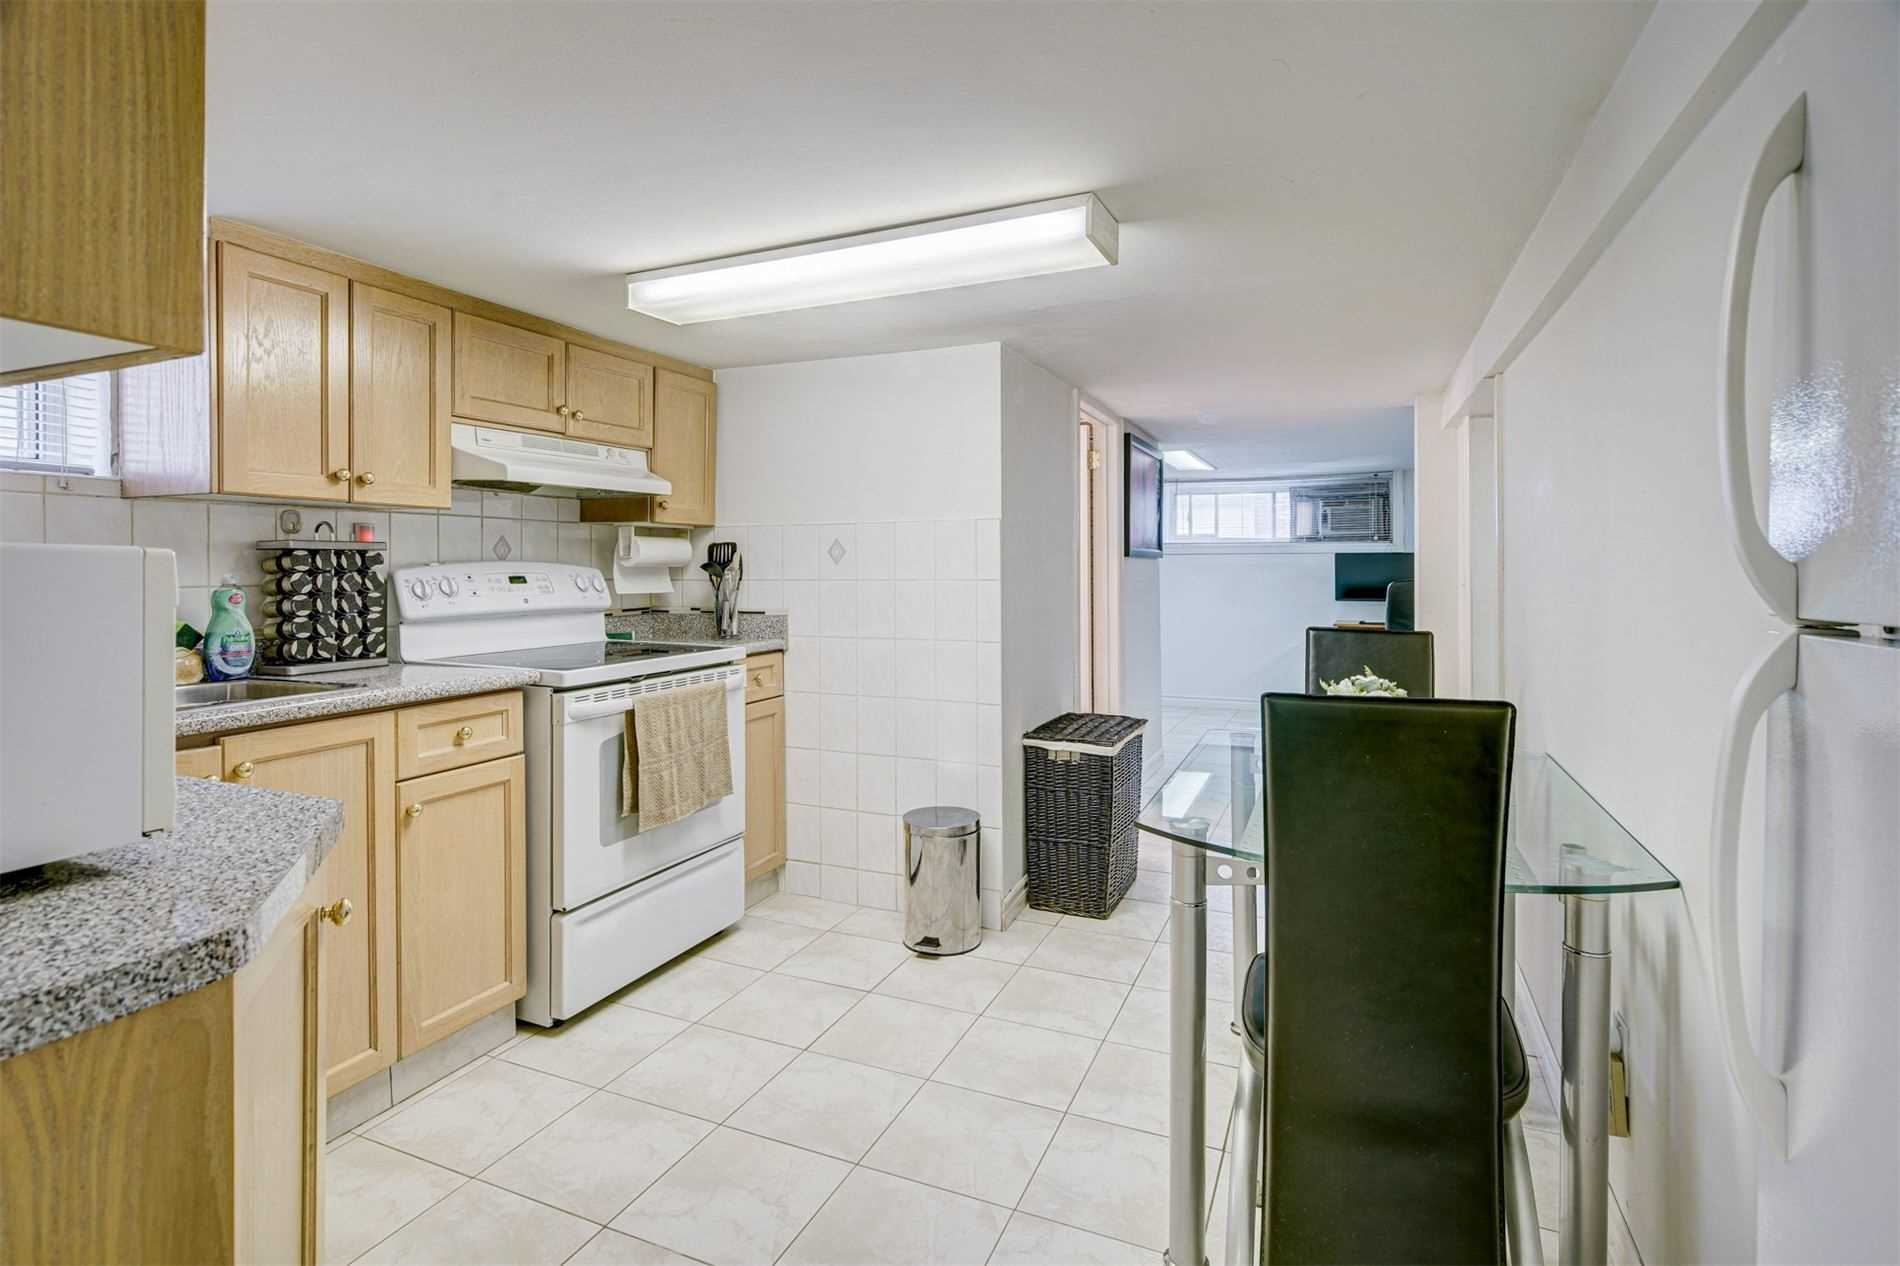 554 Caledonia Rd - Caledonia-Fairbank Detached for sale, 2 Bedrooms (W5305900) - #22